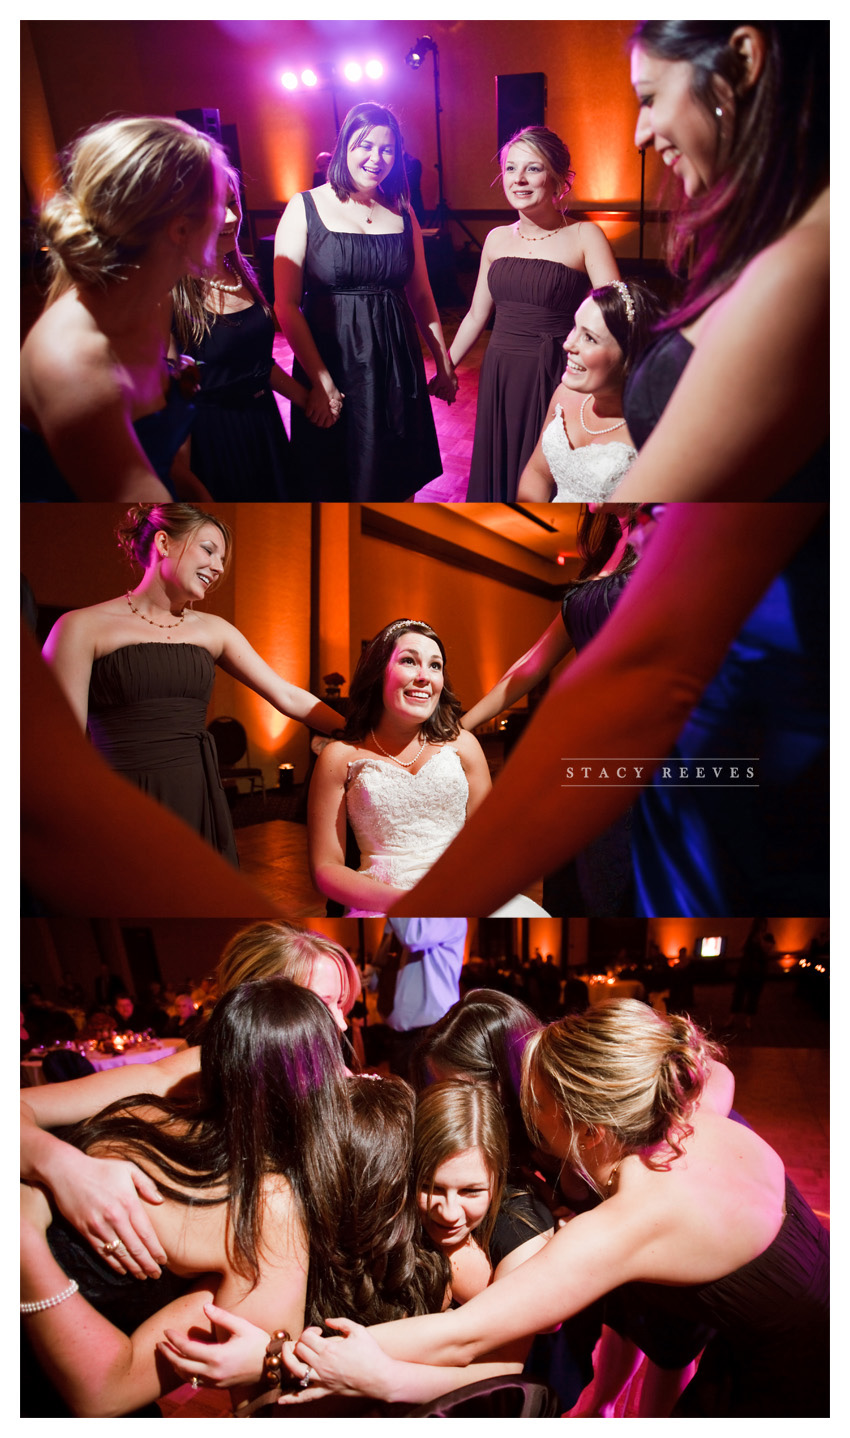 Aggie wedding of Darby Ketterman and Mark Zahradnik in College Station by Dallas wedding photographer Stacy Reeves